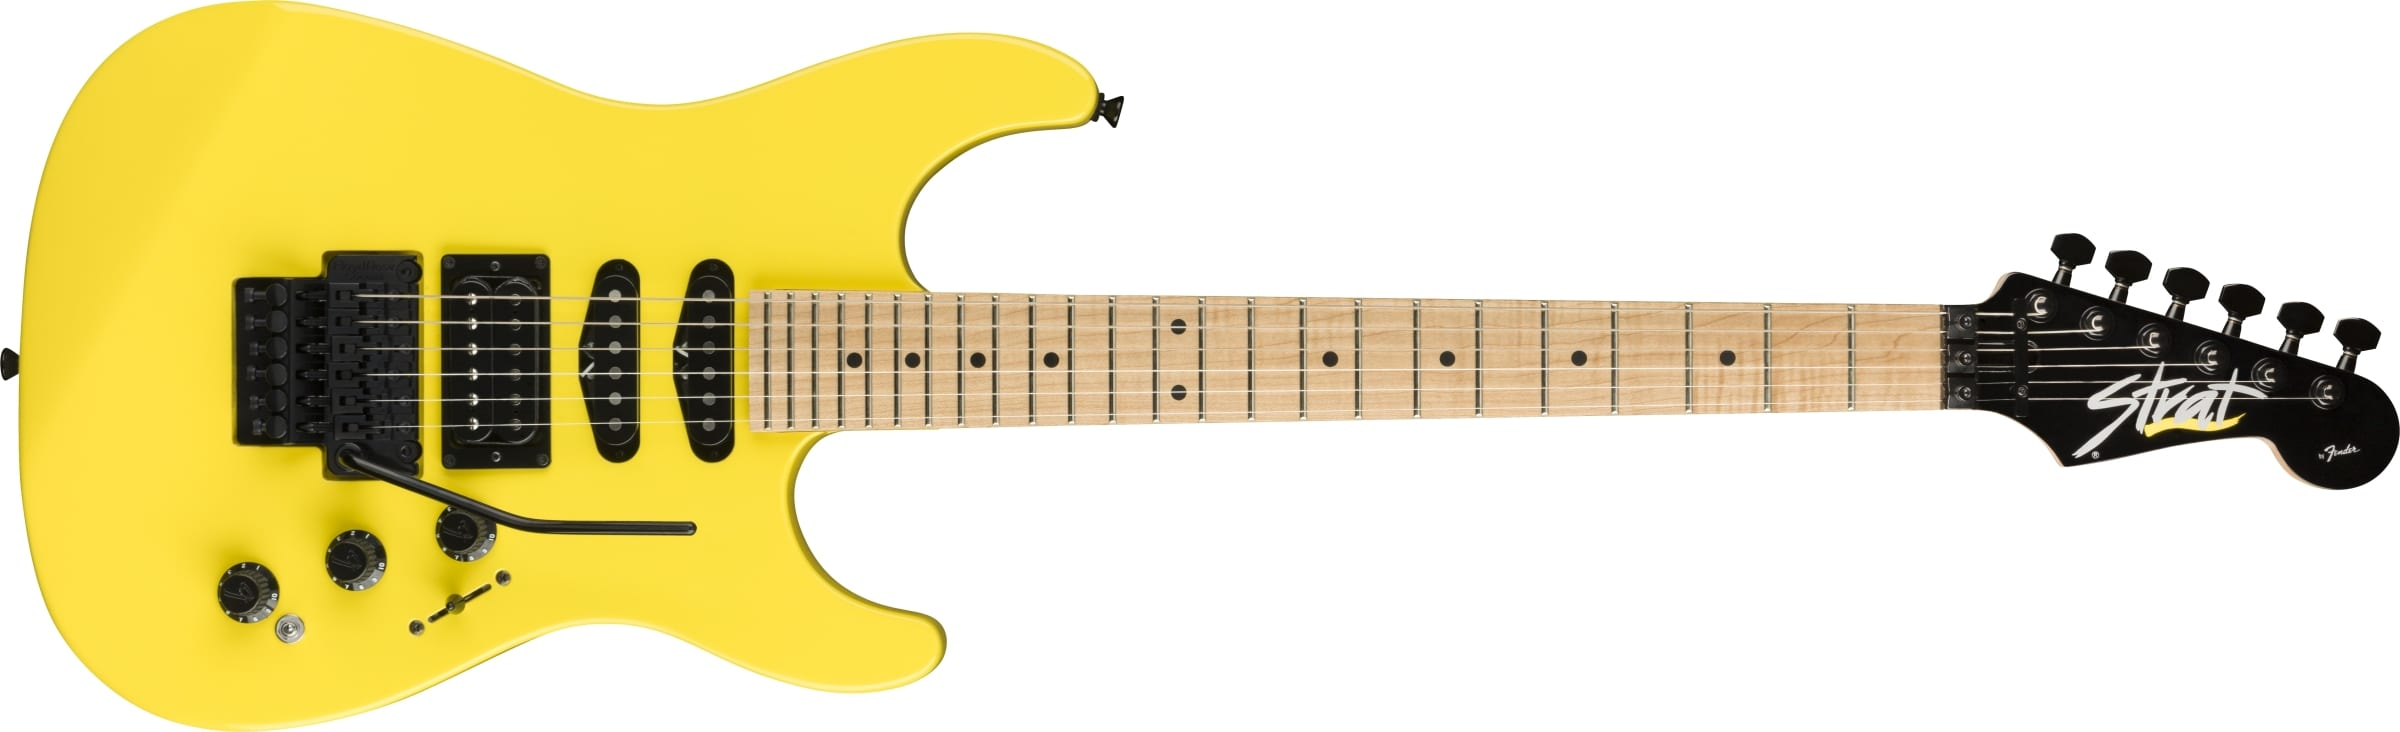 Fender HM Strat Frozen Yellow